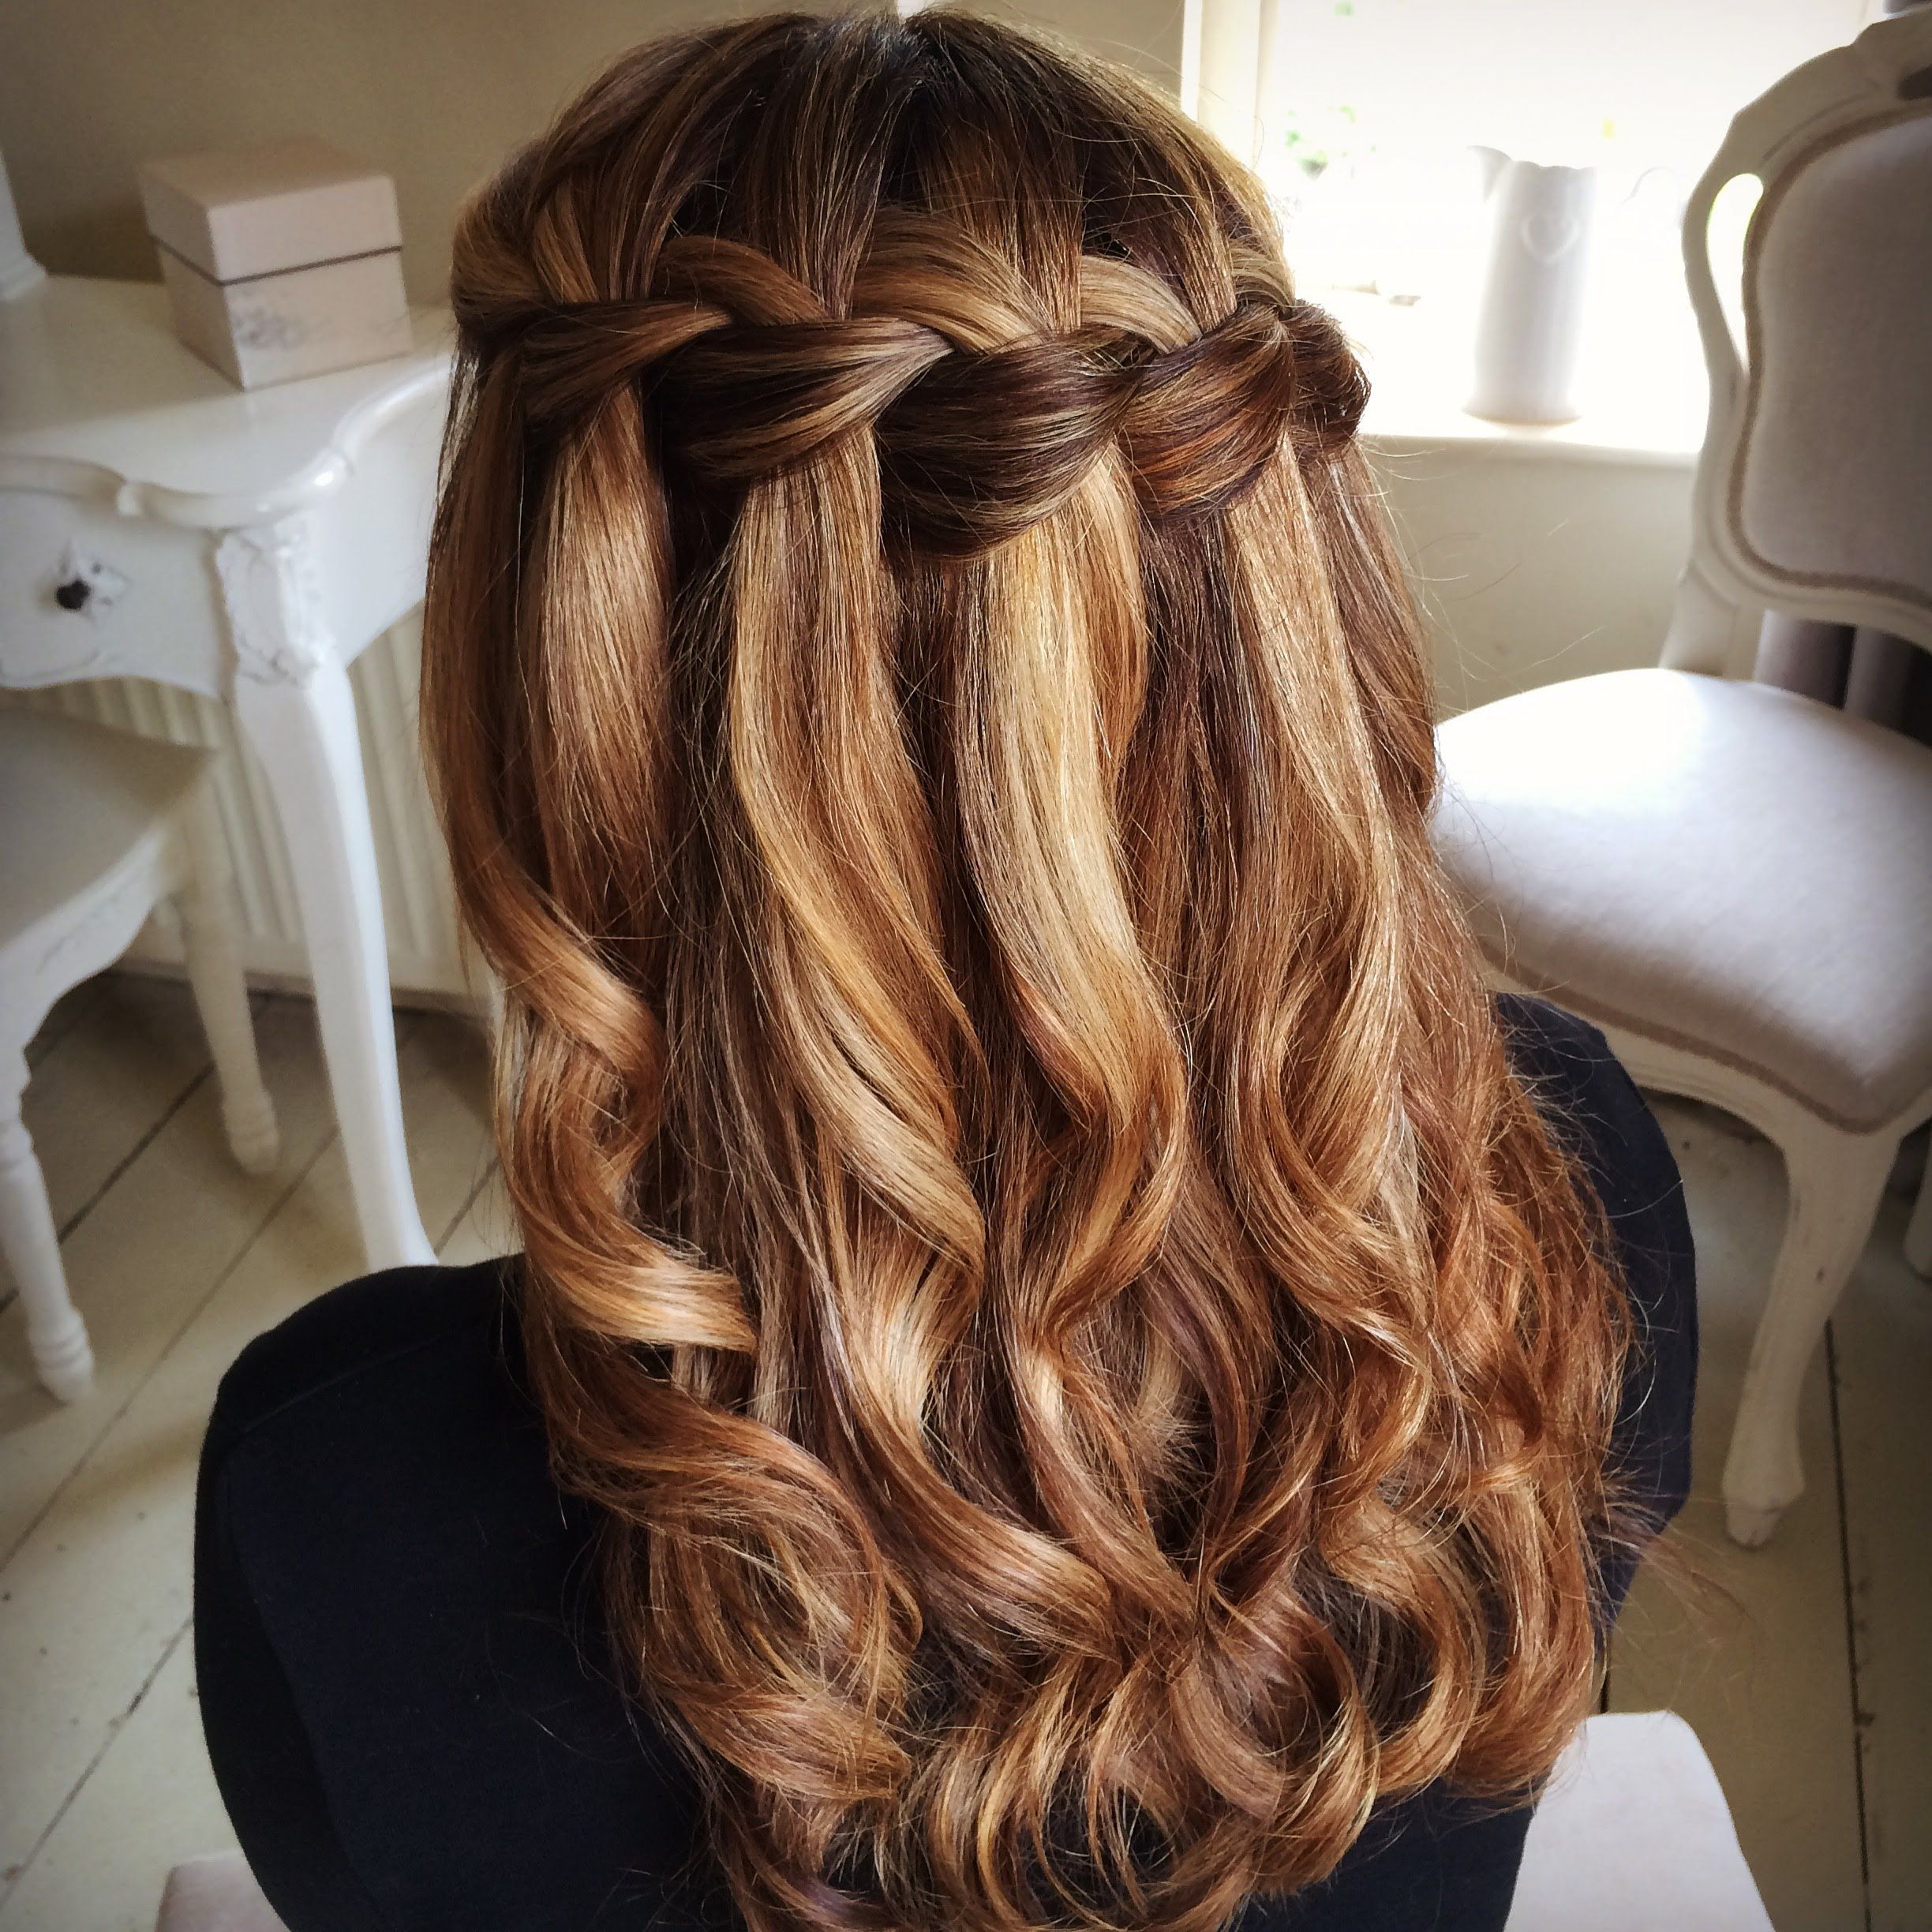 Waterfall Braid By Sweethearts Hair Design Hair Styles Waterfall Braid Hairstyle Sweethearts Hair Design